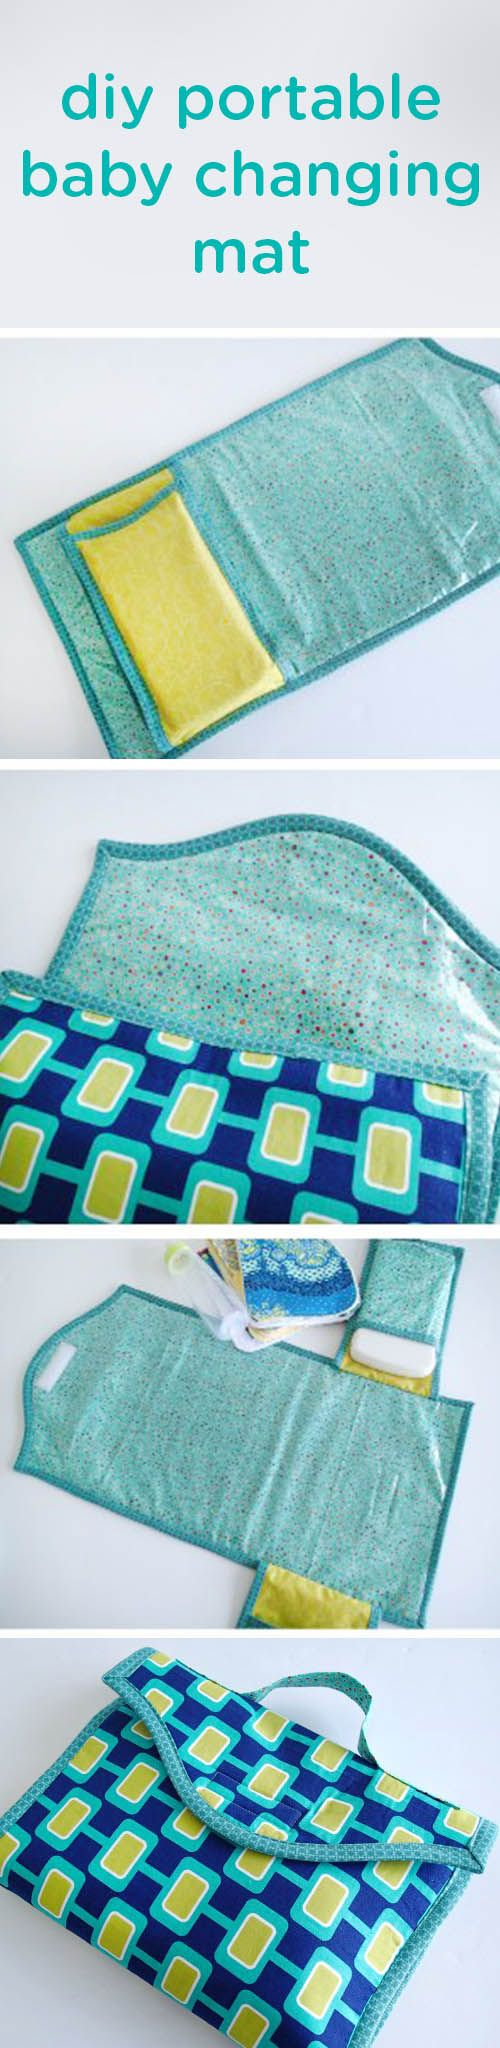 Whether it's for vacation or a day out and about running errands, This easy sewing project for a DIY portable baby changing mat is wonderful to have on hand when traveling with your baby. This homemade unfolding carrying case makes changing diapers away from home easy—the perfect thing to make this weekend for yourself or as a baby shower gift idea for an expecting friend.